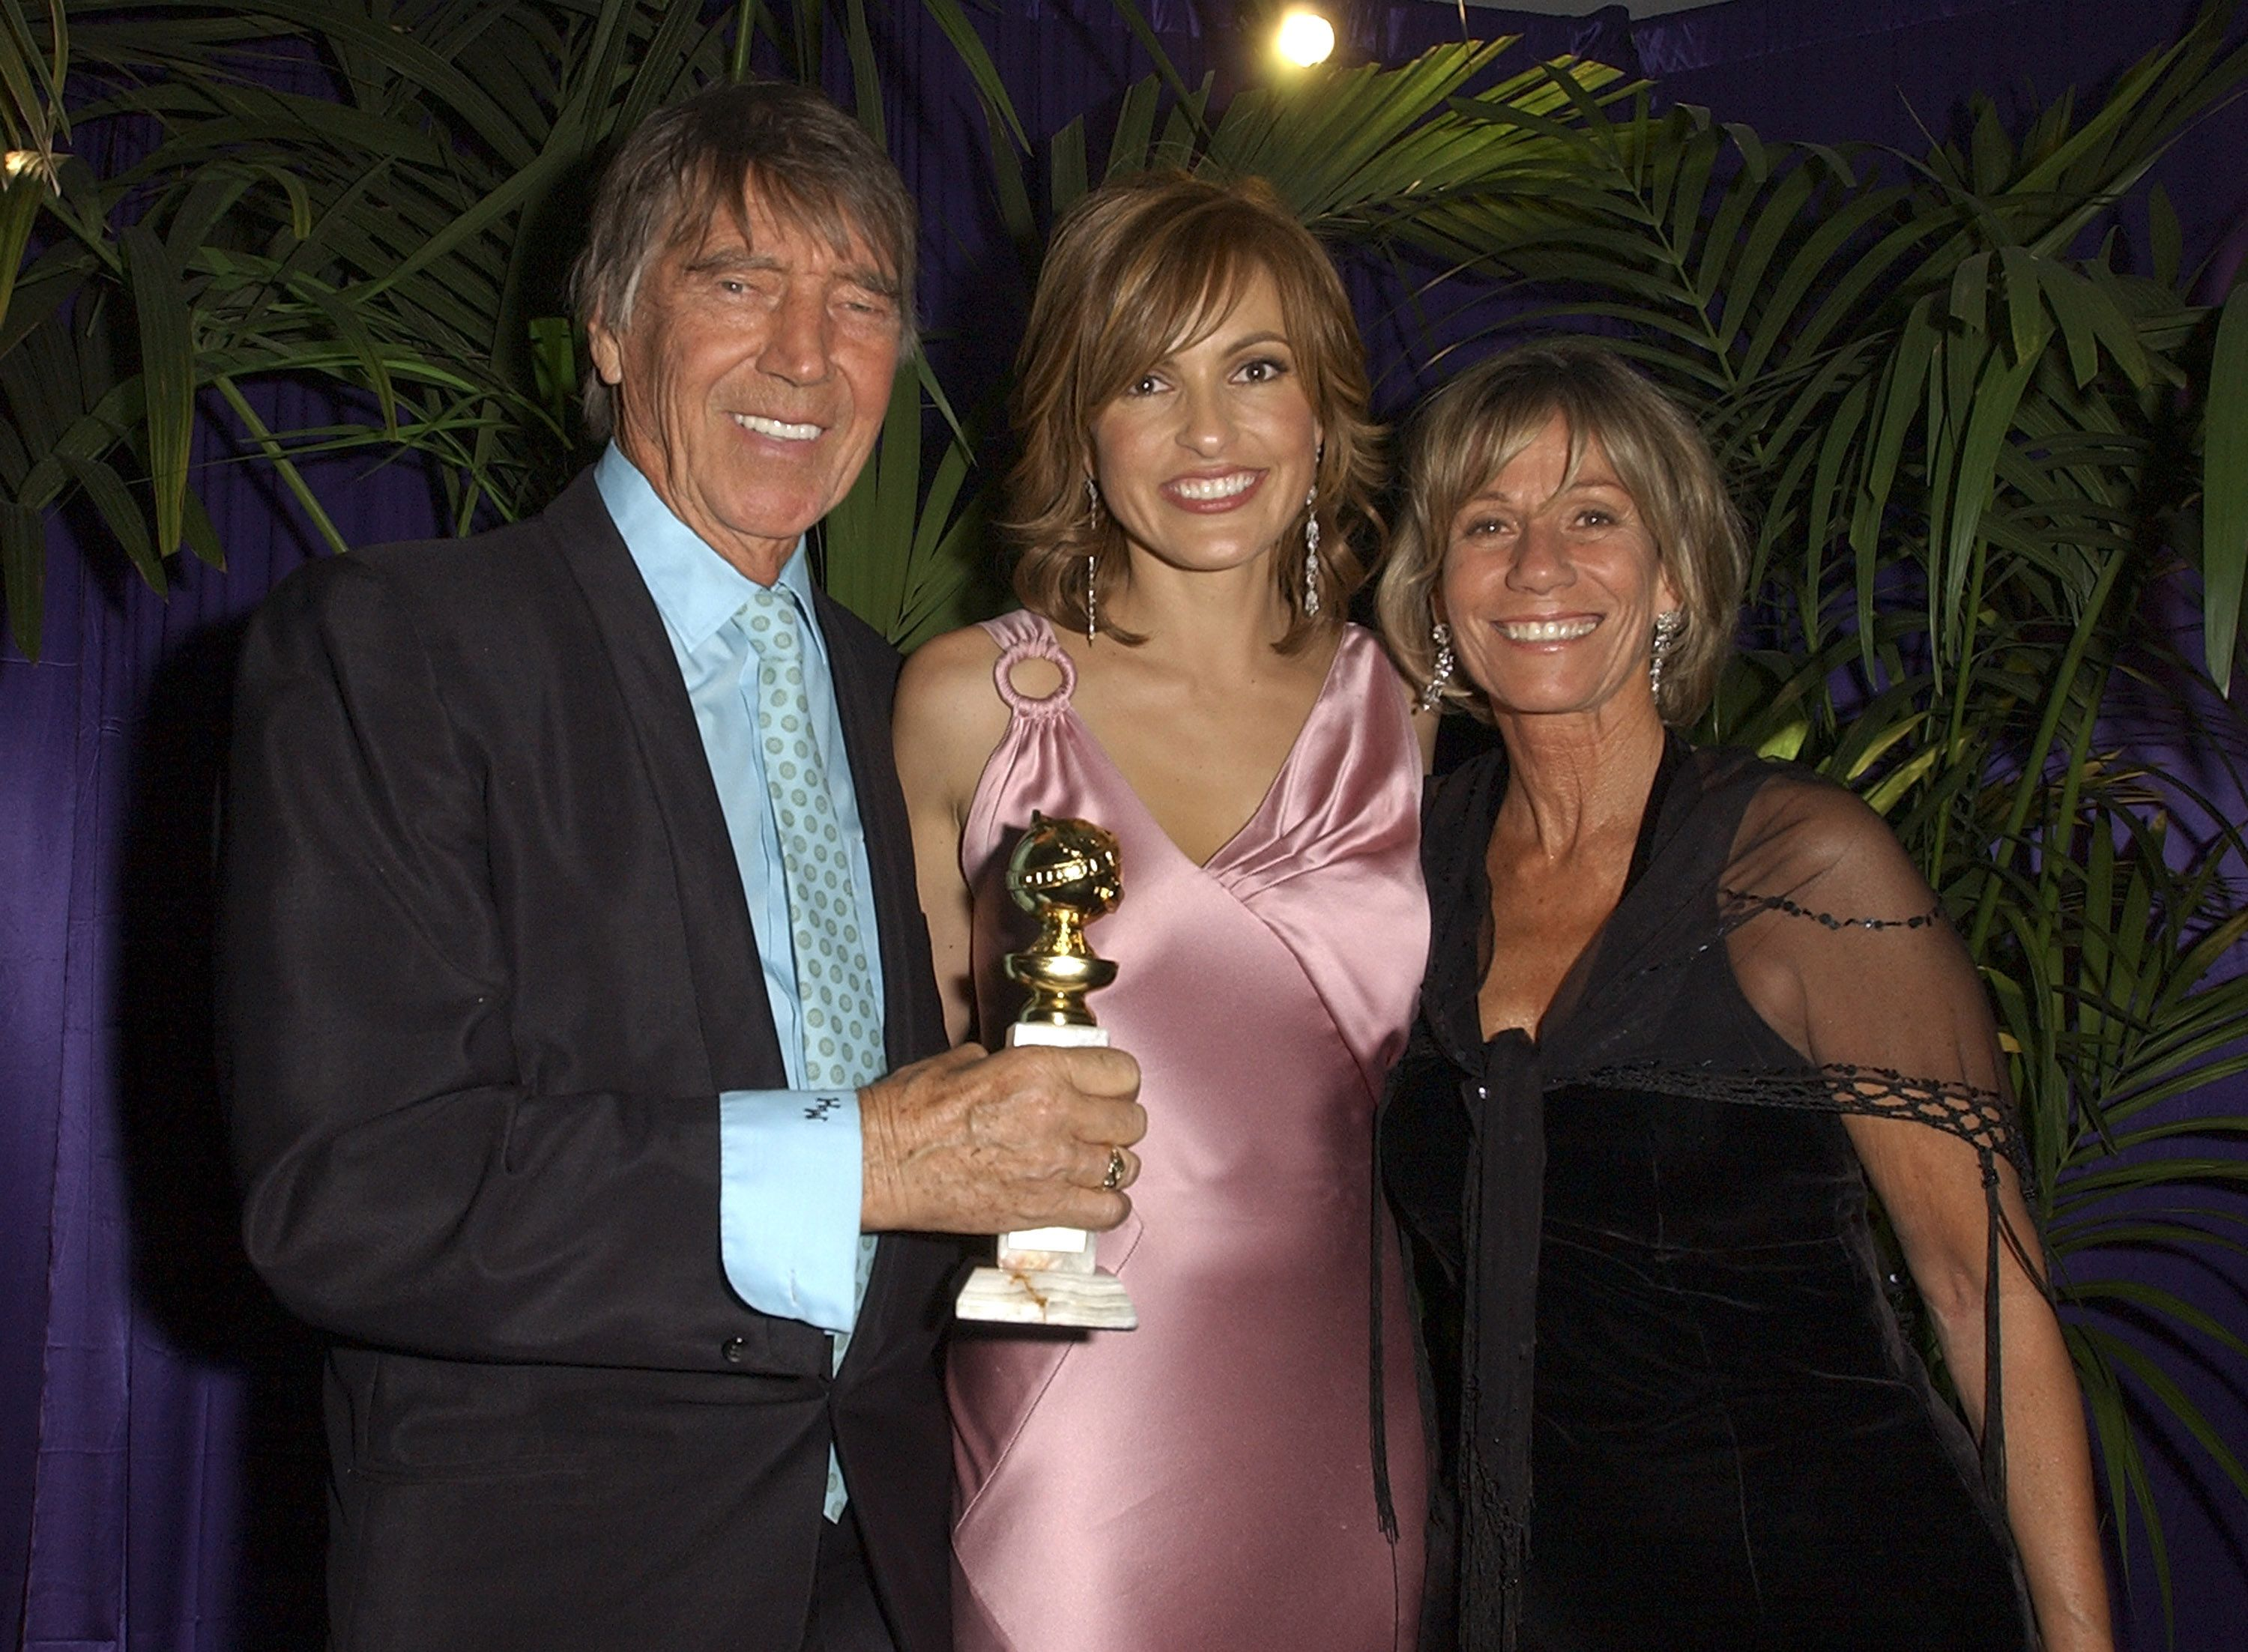 Marishka Hargitay, her father Mickey Hargitay, and her stepmother Ellen Siano at the 2005 Golden Globe Awards | Siurce: Getty Images